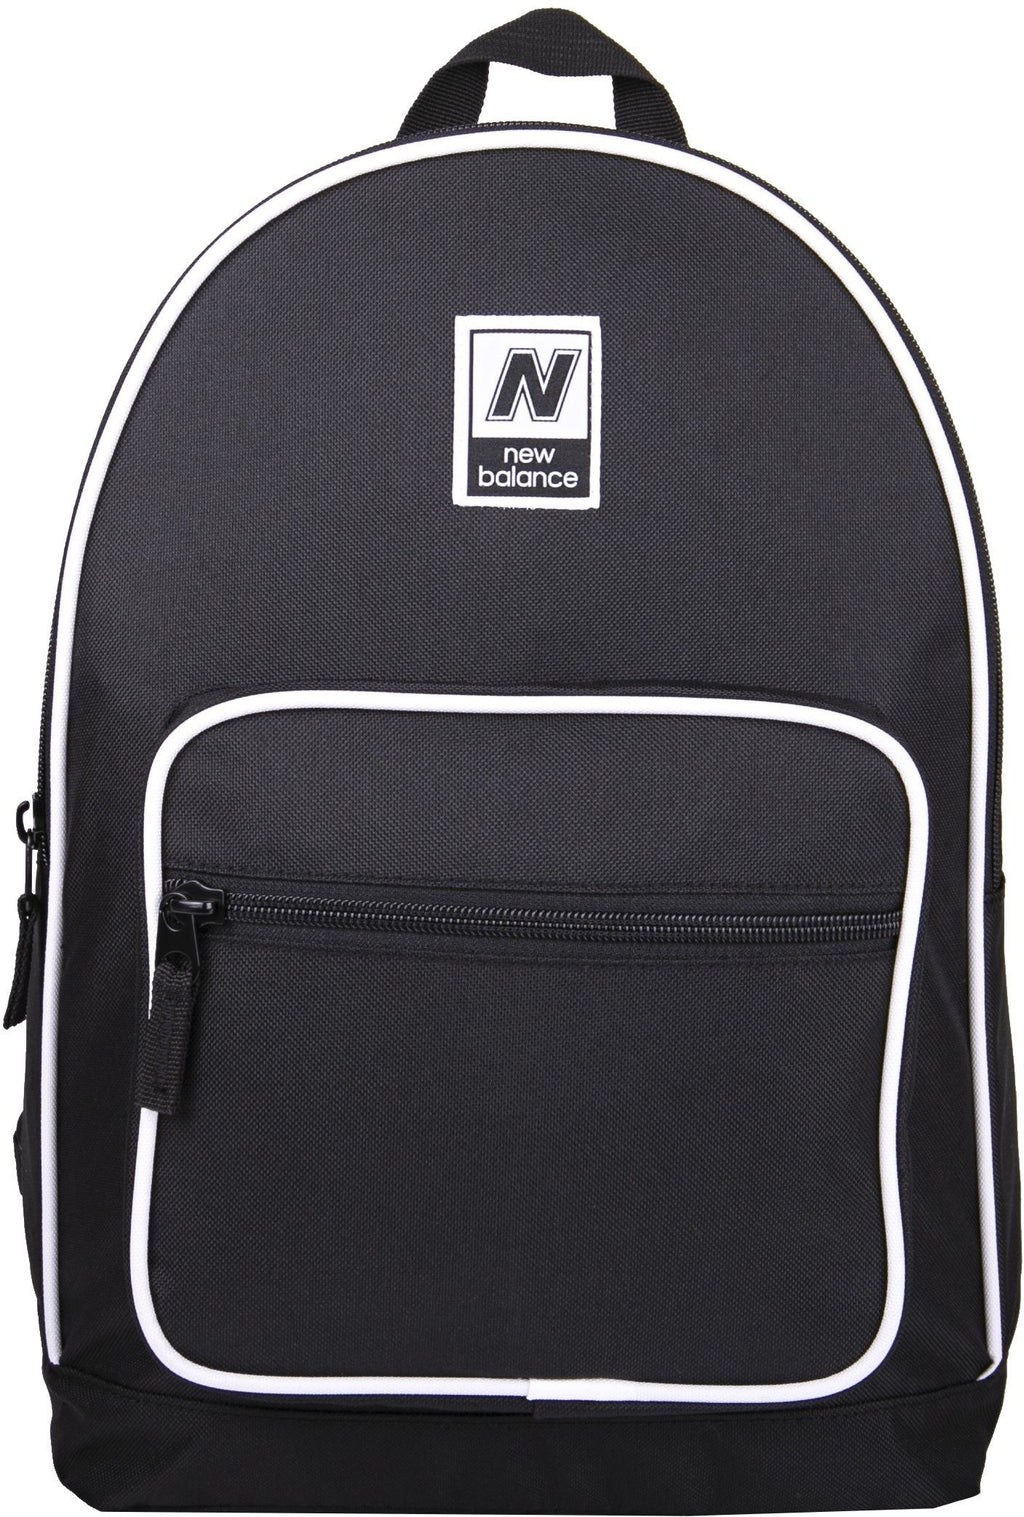 New Balance Classic Backpack Bag Black